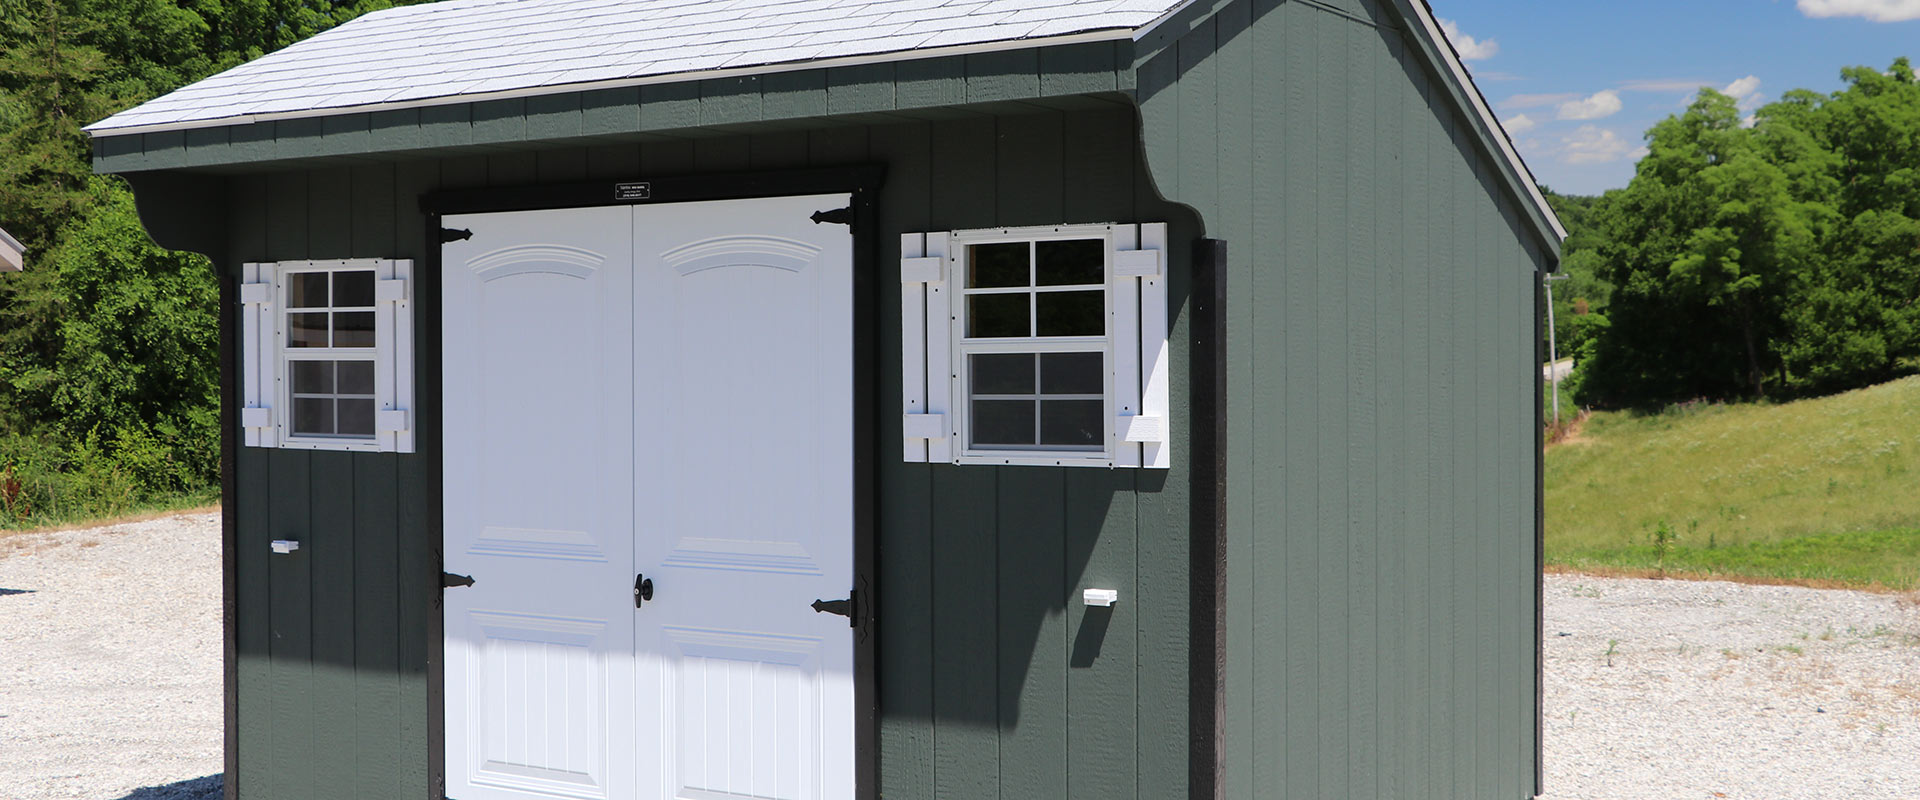 Storage Sheds   Backyard Buildings | Martinu0027s Mini Barns   Iowa